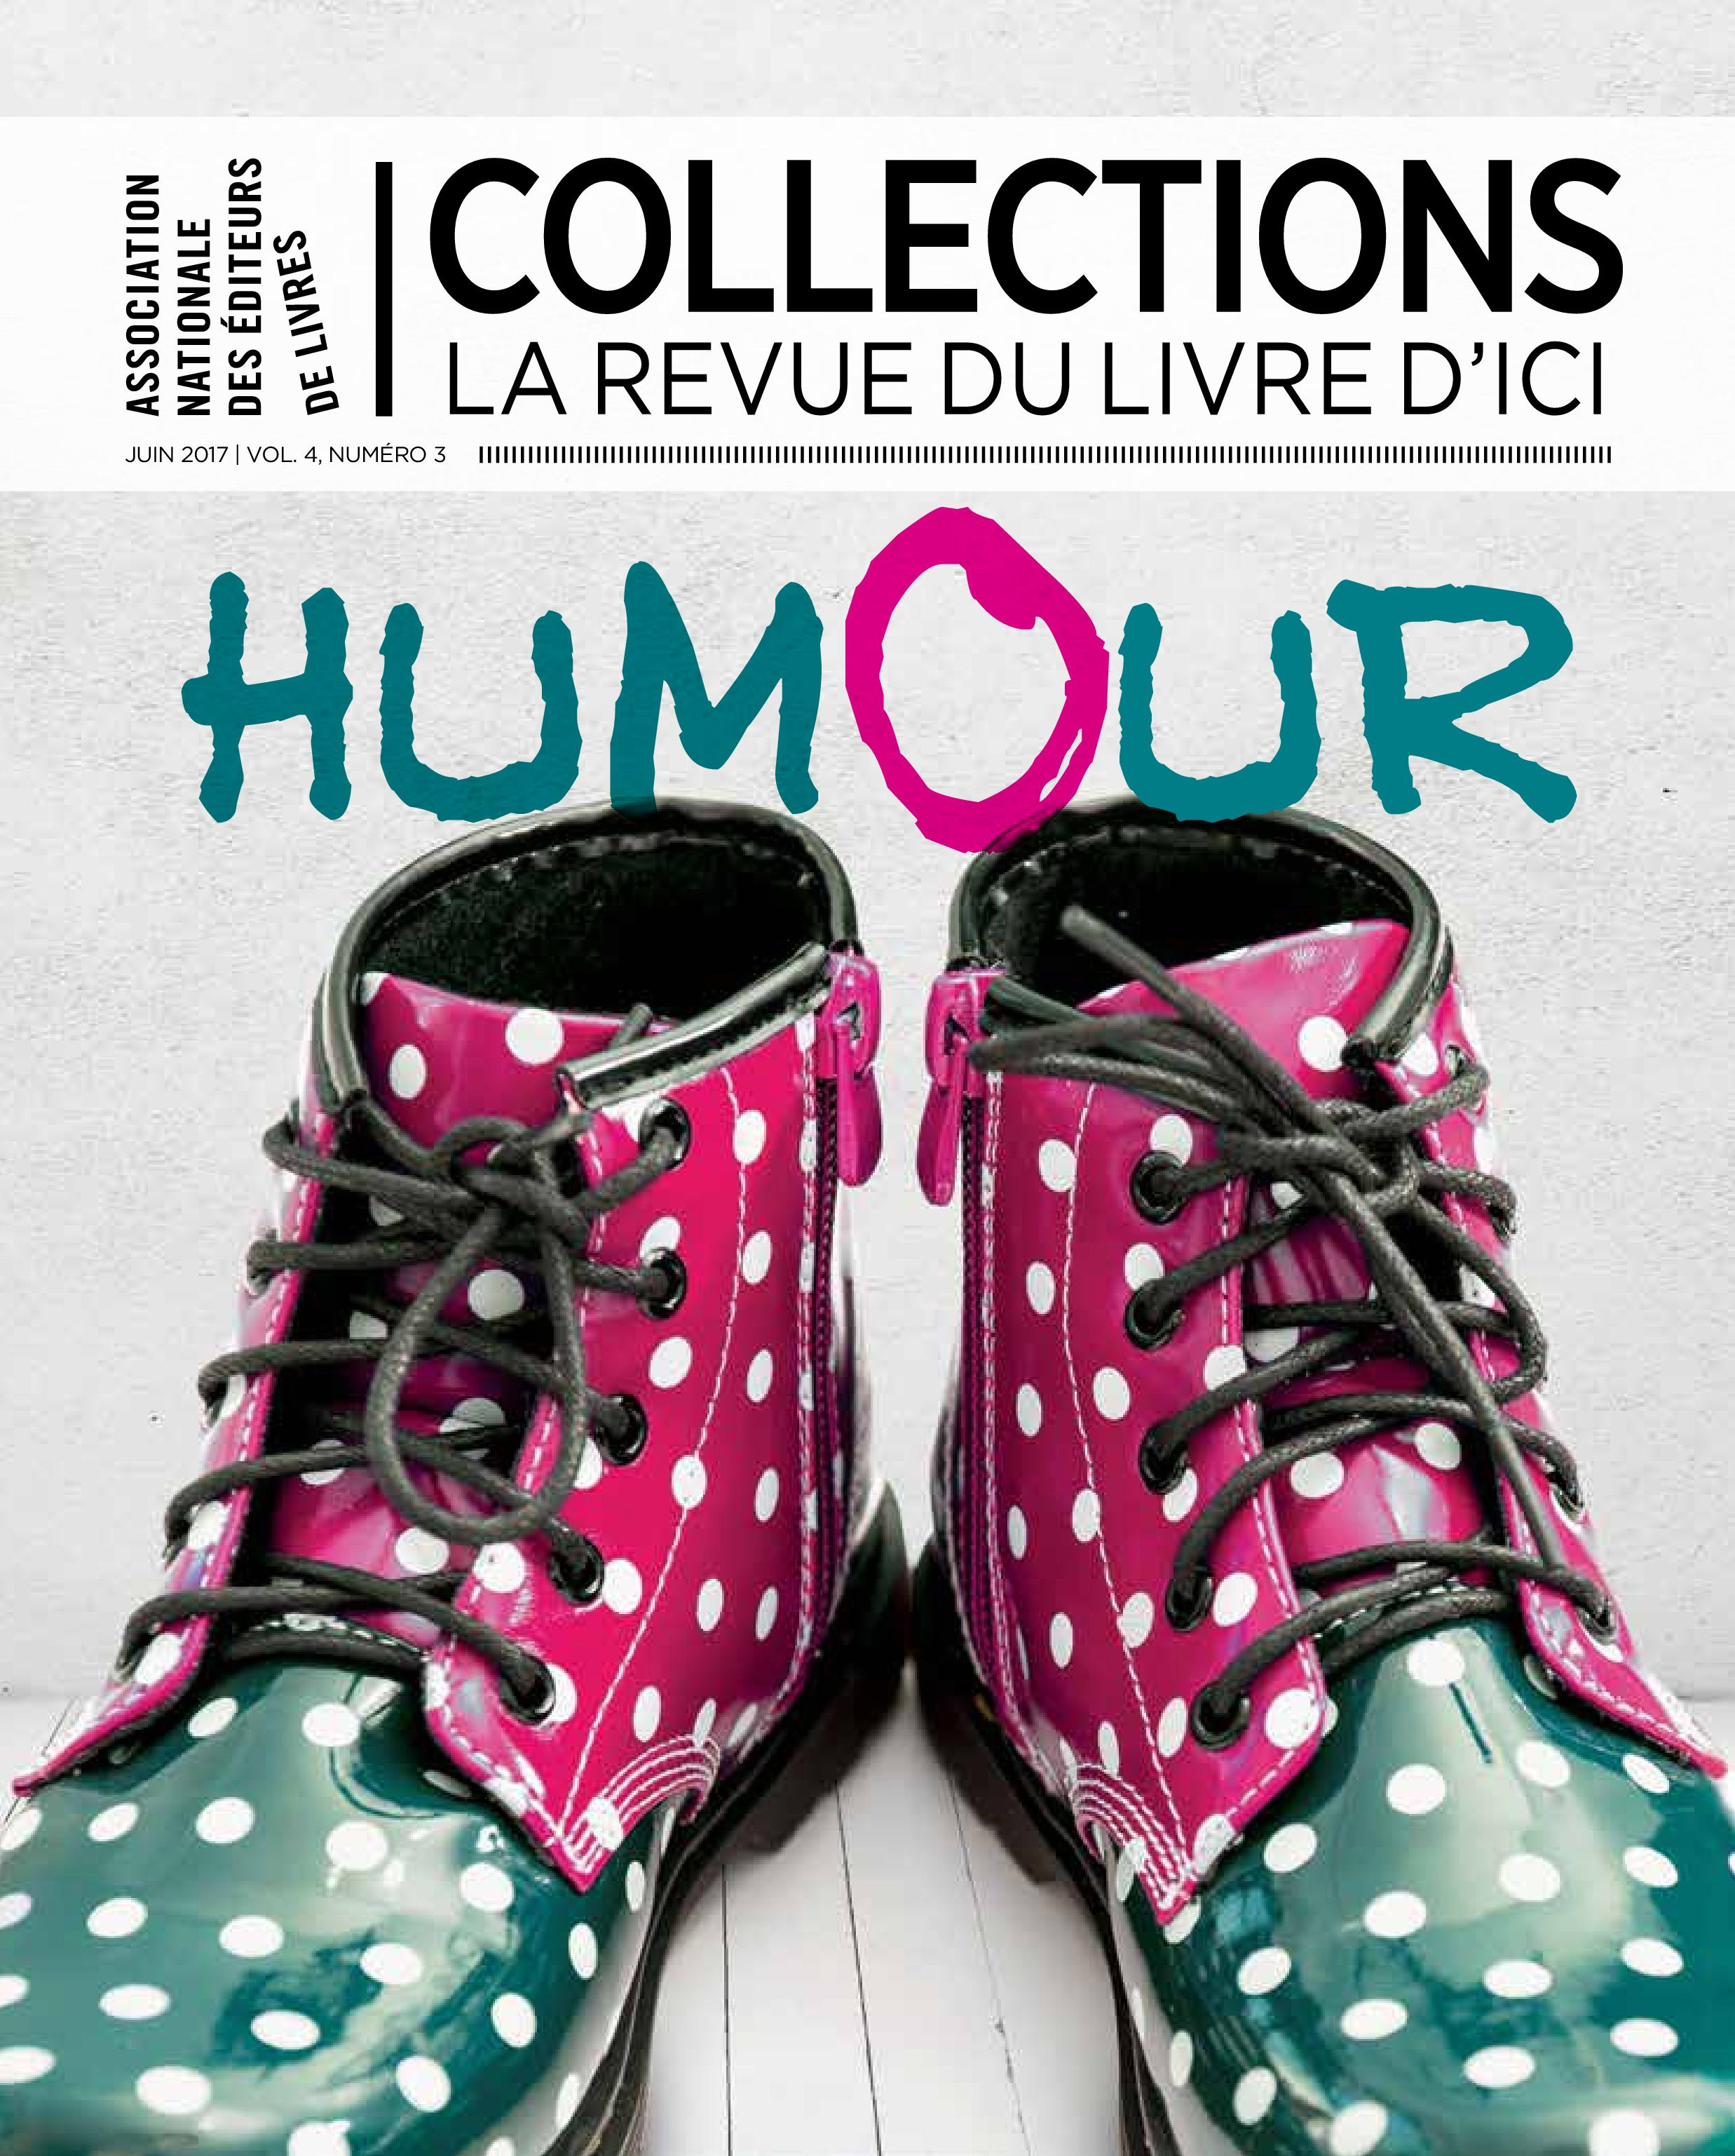 Collections Vol 4, No 3, Hu...